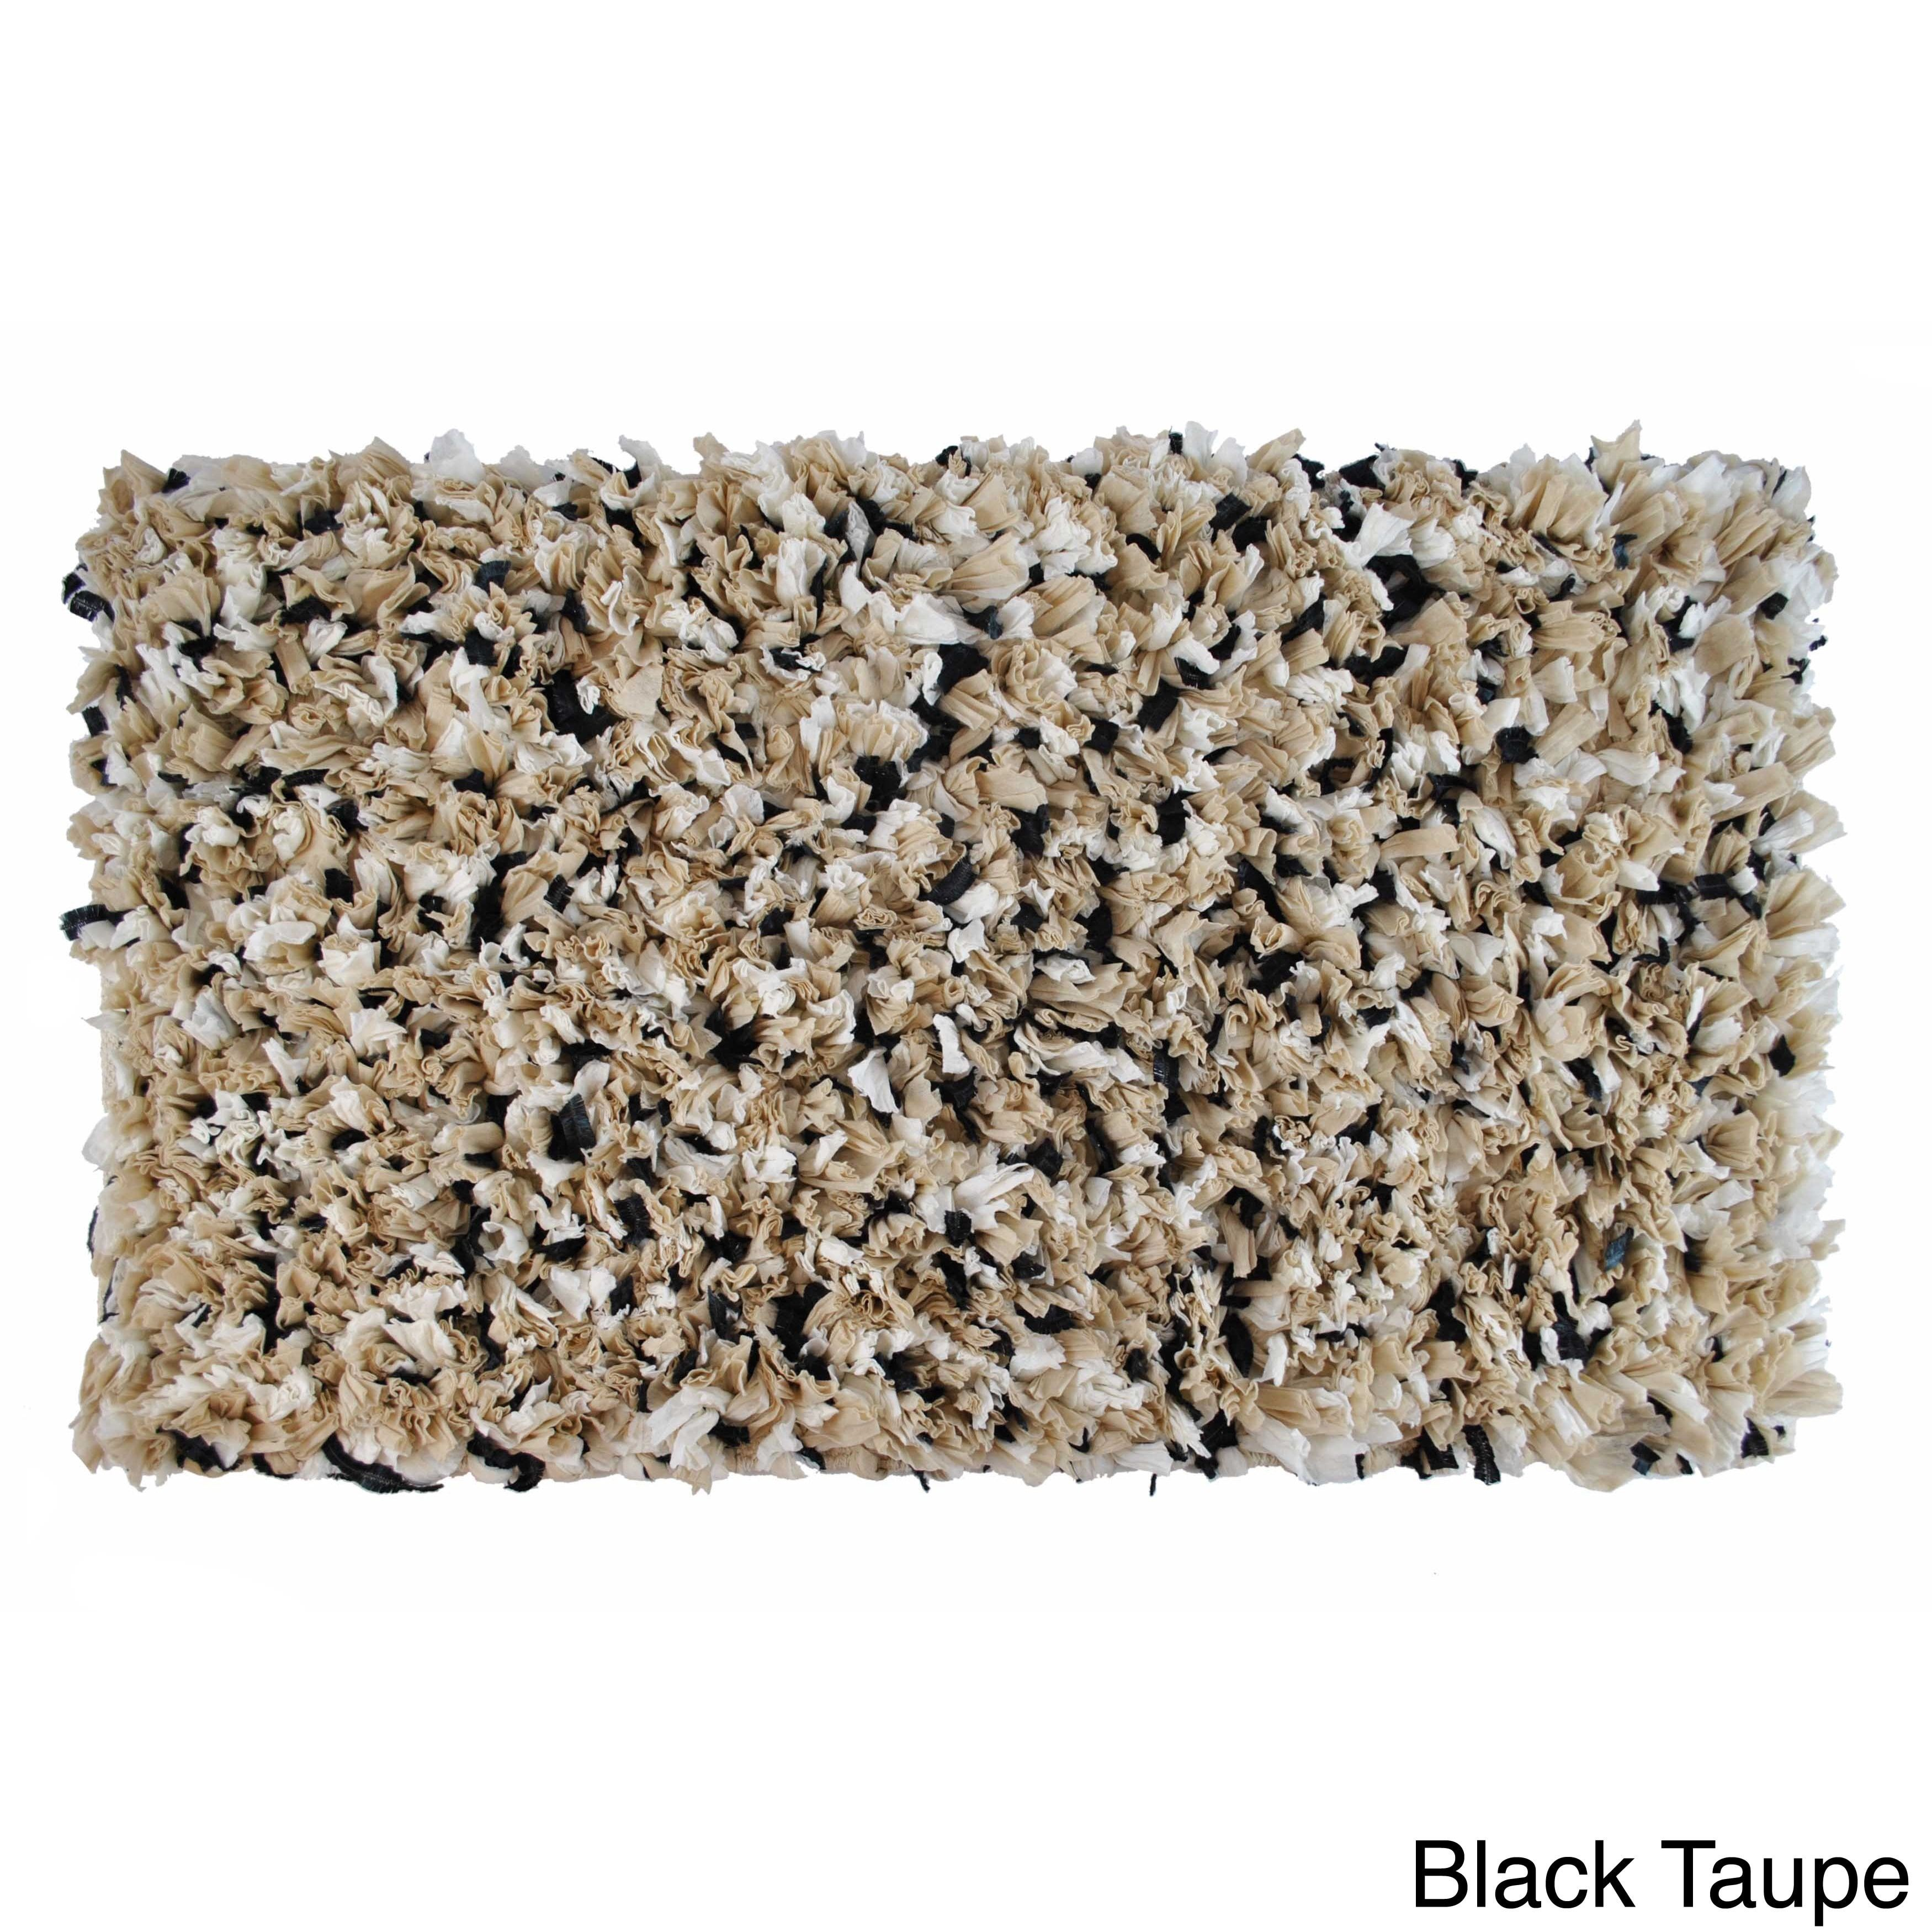 Ultra Thin Bath Mats There Is Nothing More Uneasy Than Standing On A Hard Tile Flooring And Getting Out Of The Shower Or Ba